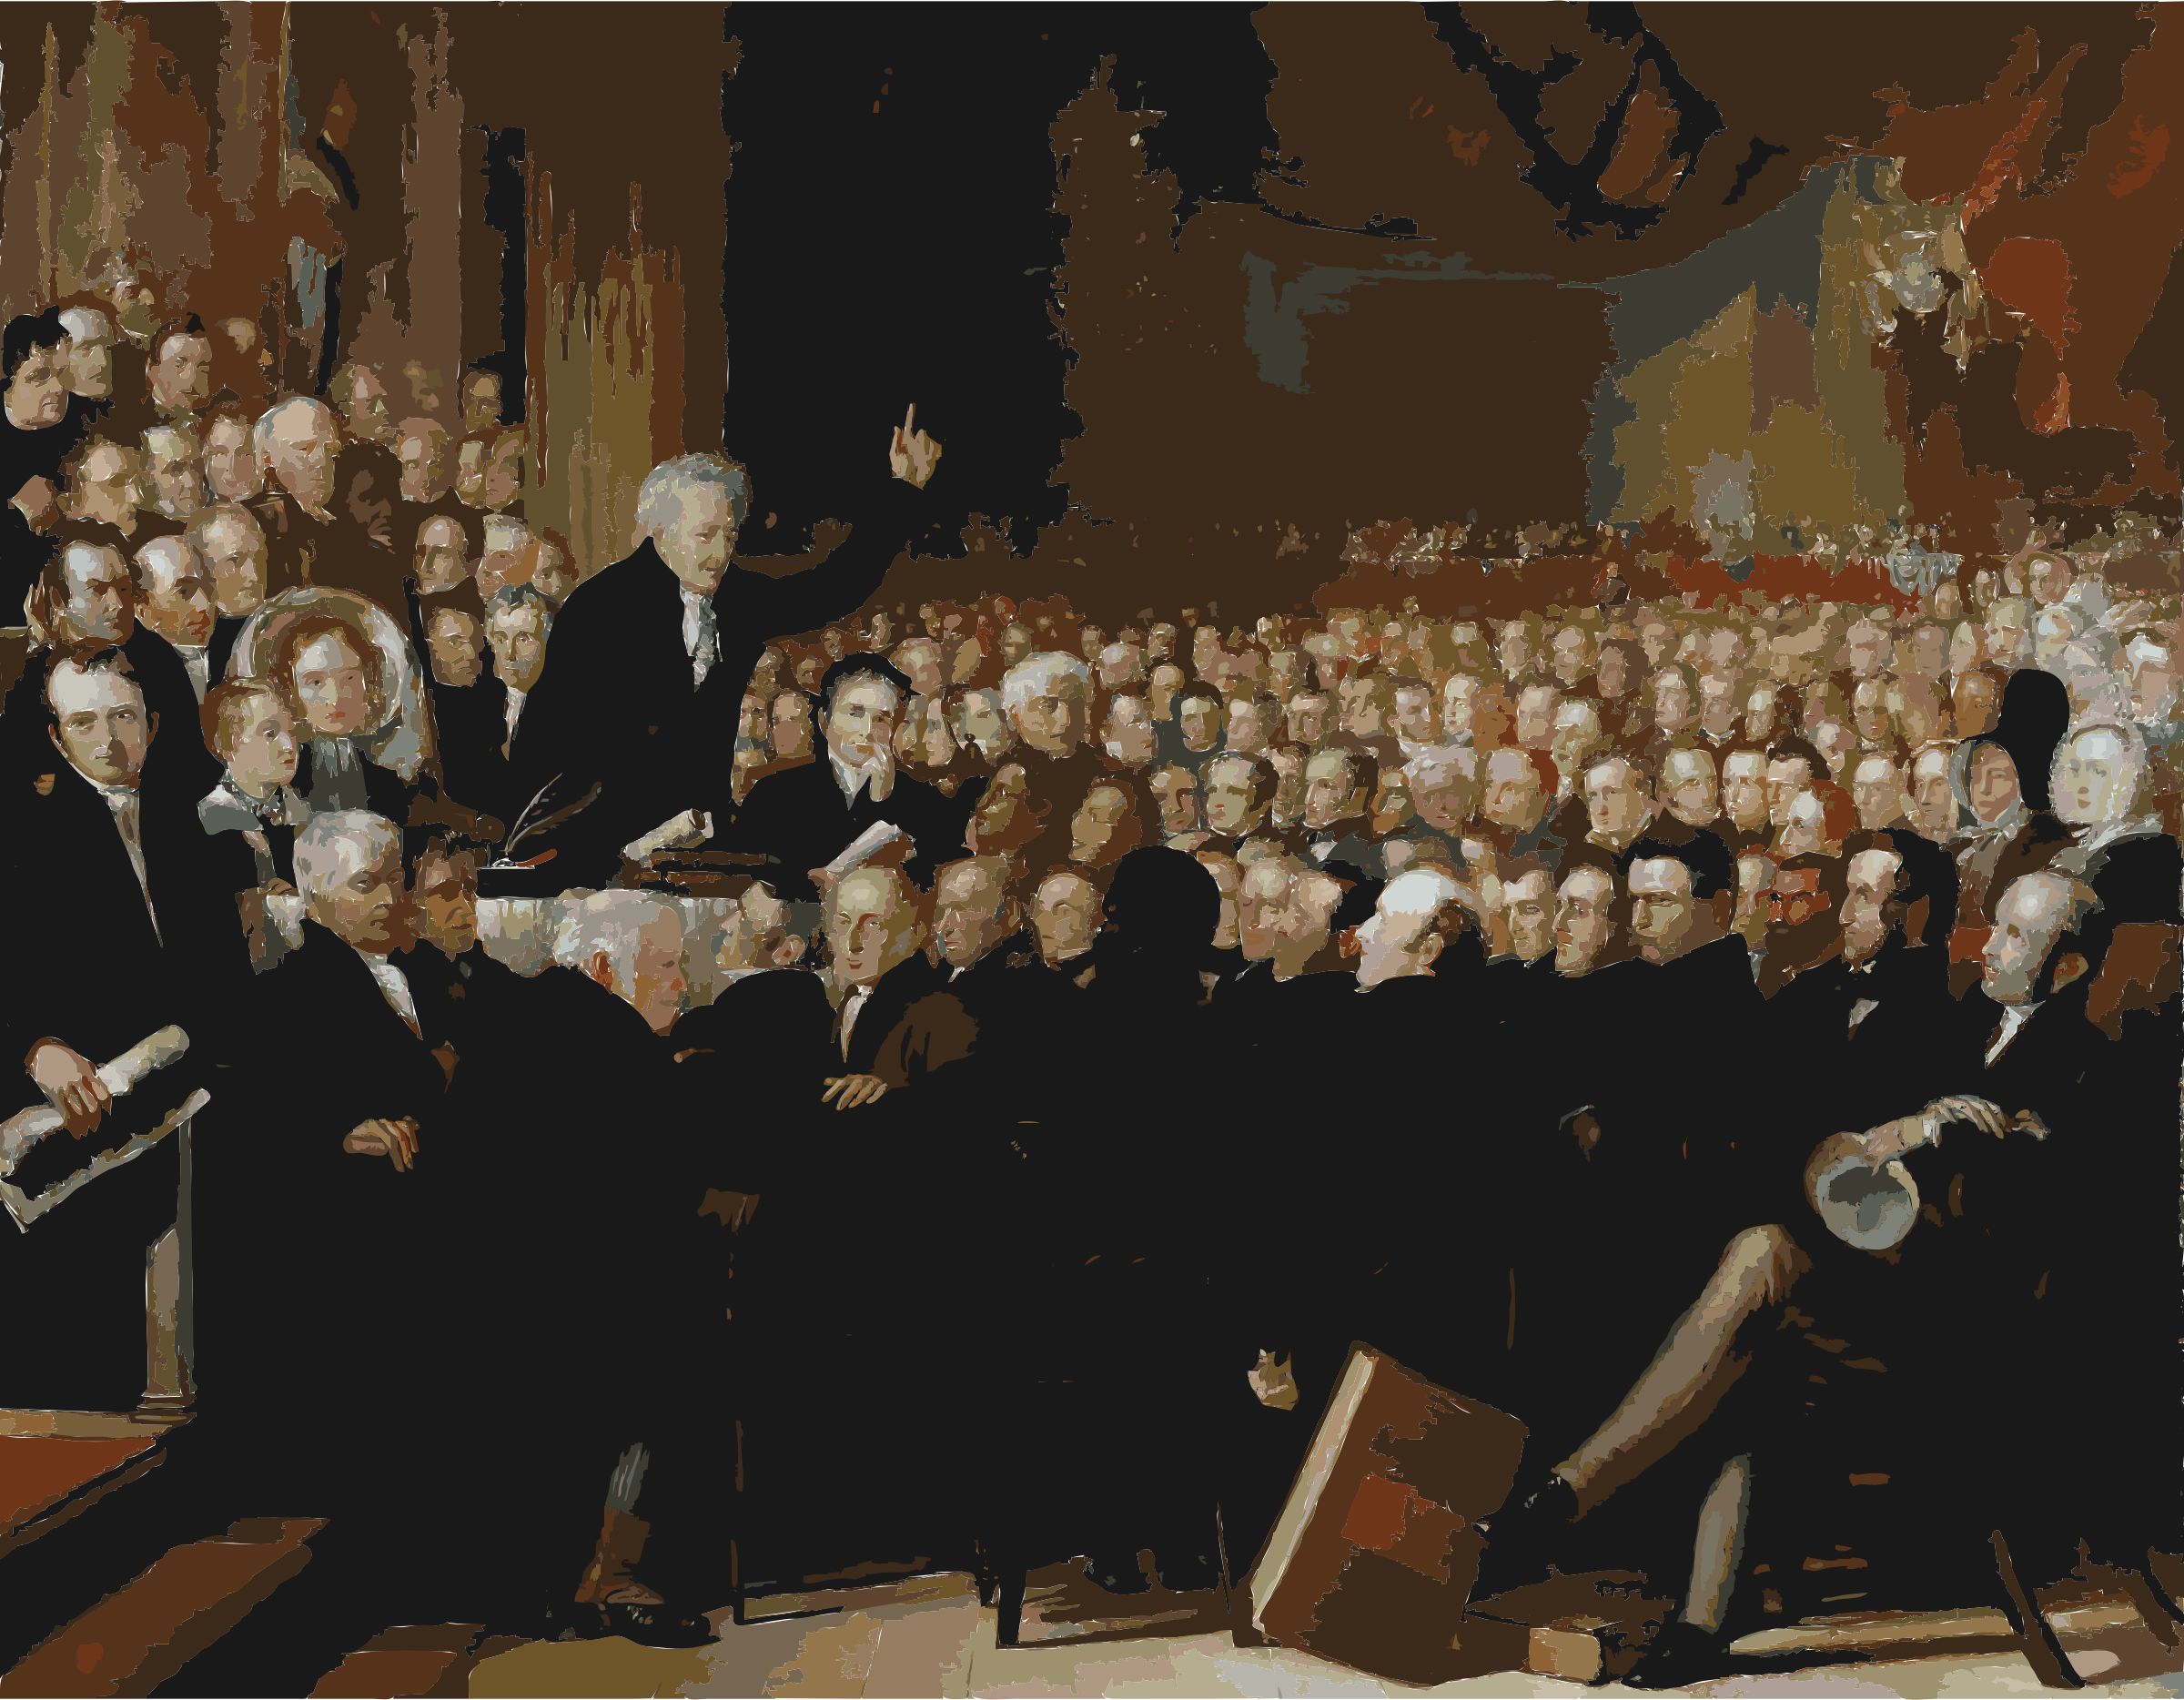 The Anti-Slavery Society Convention, 1840 by Benjamin Robert Haydon by 5n8ag4+endyauppxpaas